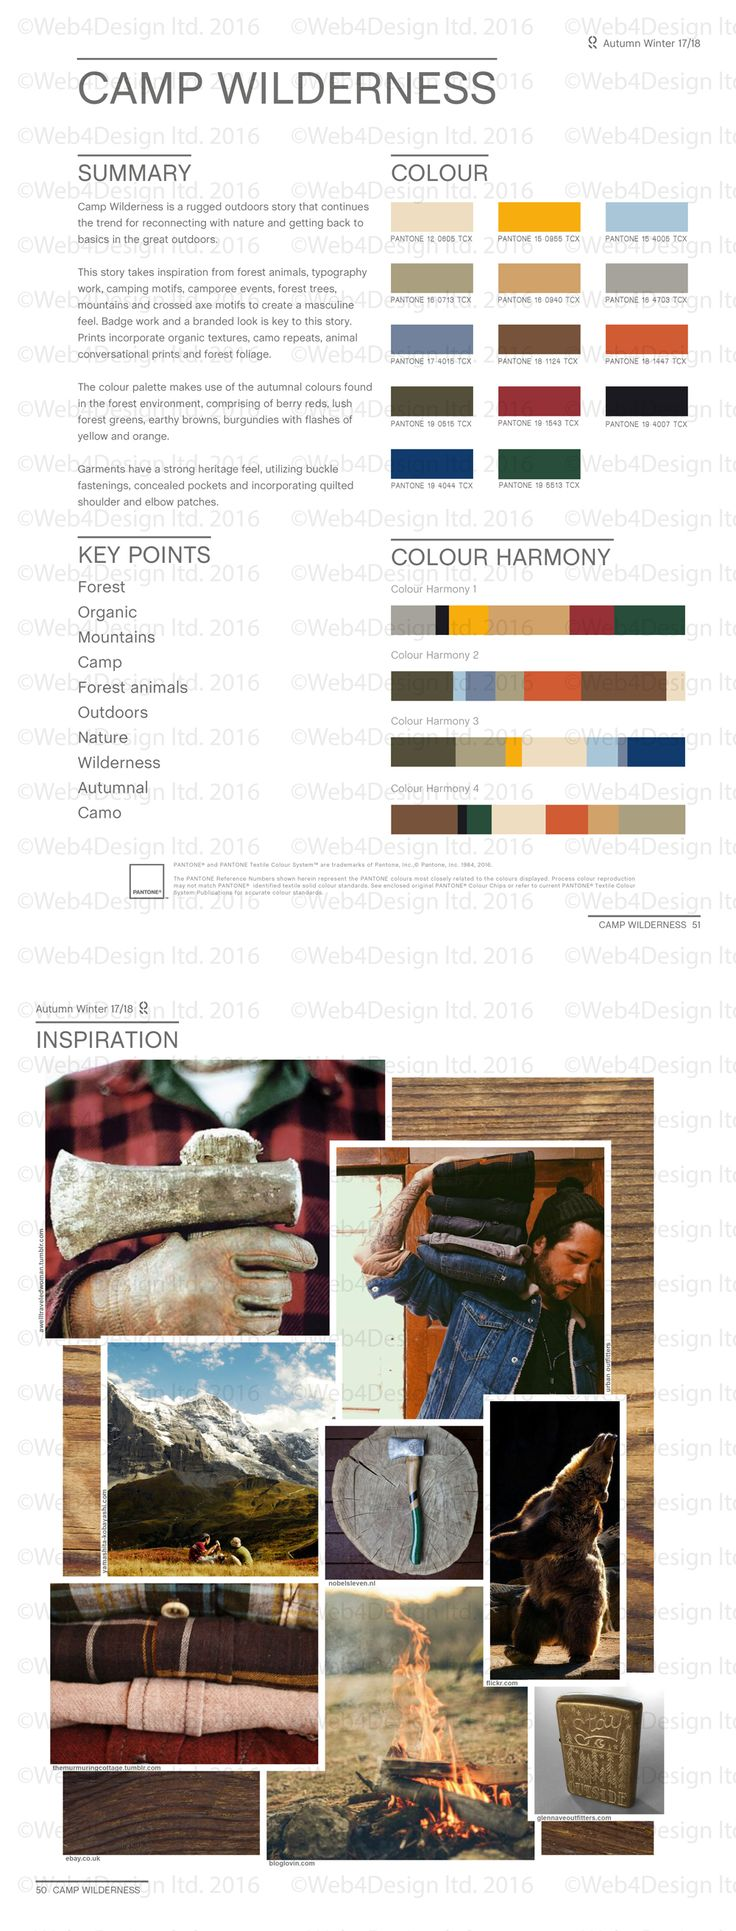 Style Right Camp Wildernessa AW1718 Trend Board